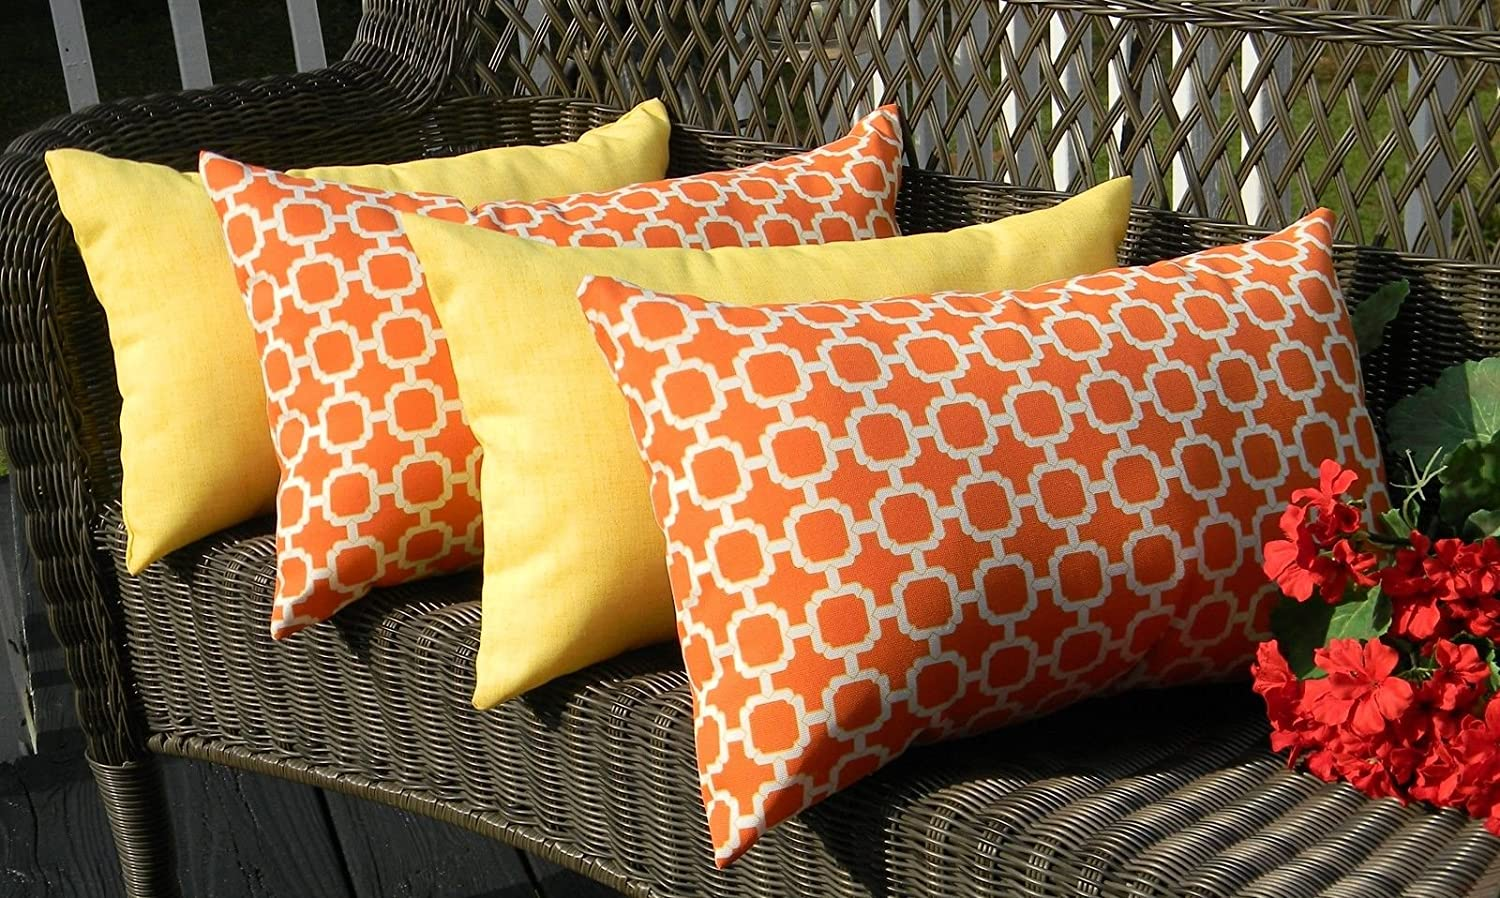 Set of 4 Indoor Outdoor Decorative Lumbar Rectangle Pillows – 2 Orange and White Geometric Hockley and 2 Solid Yellow